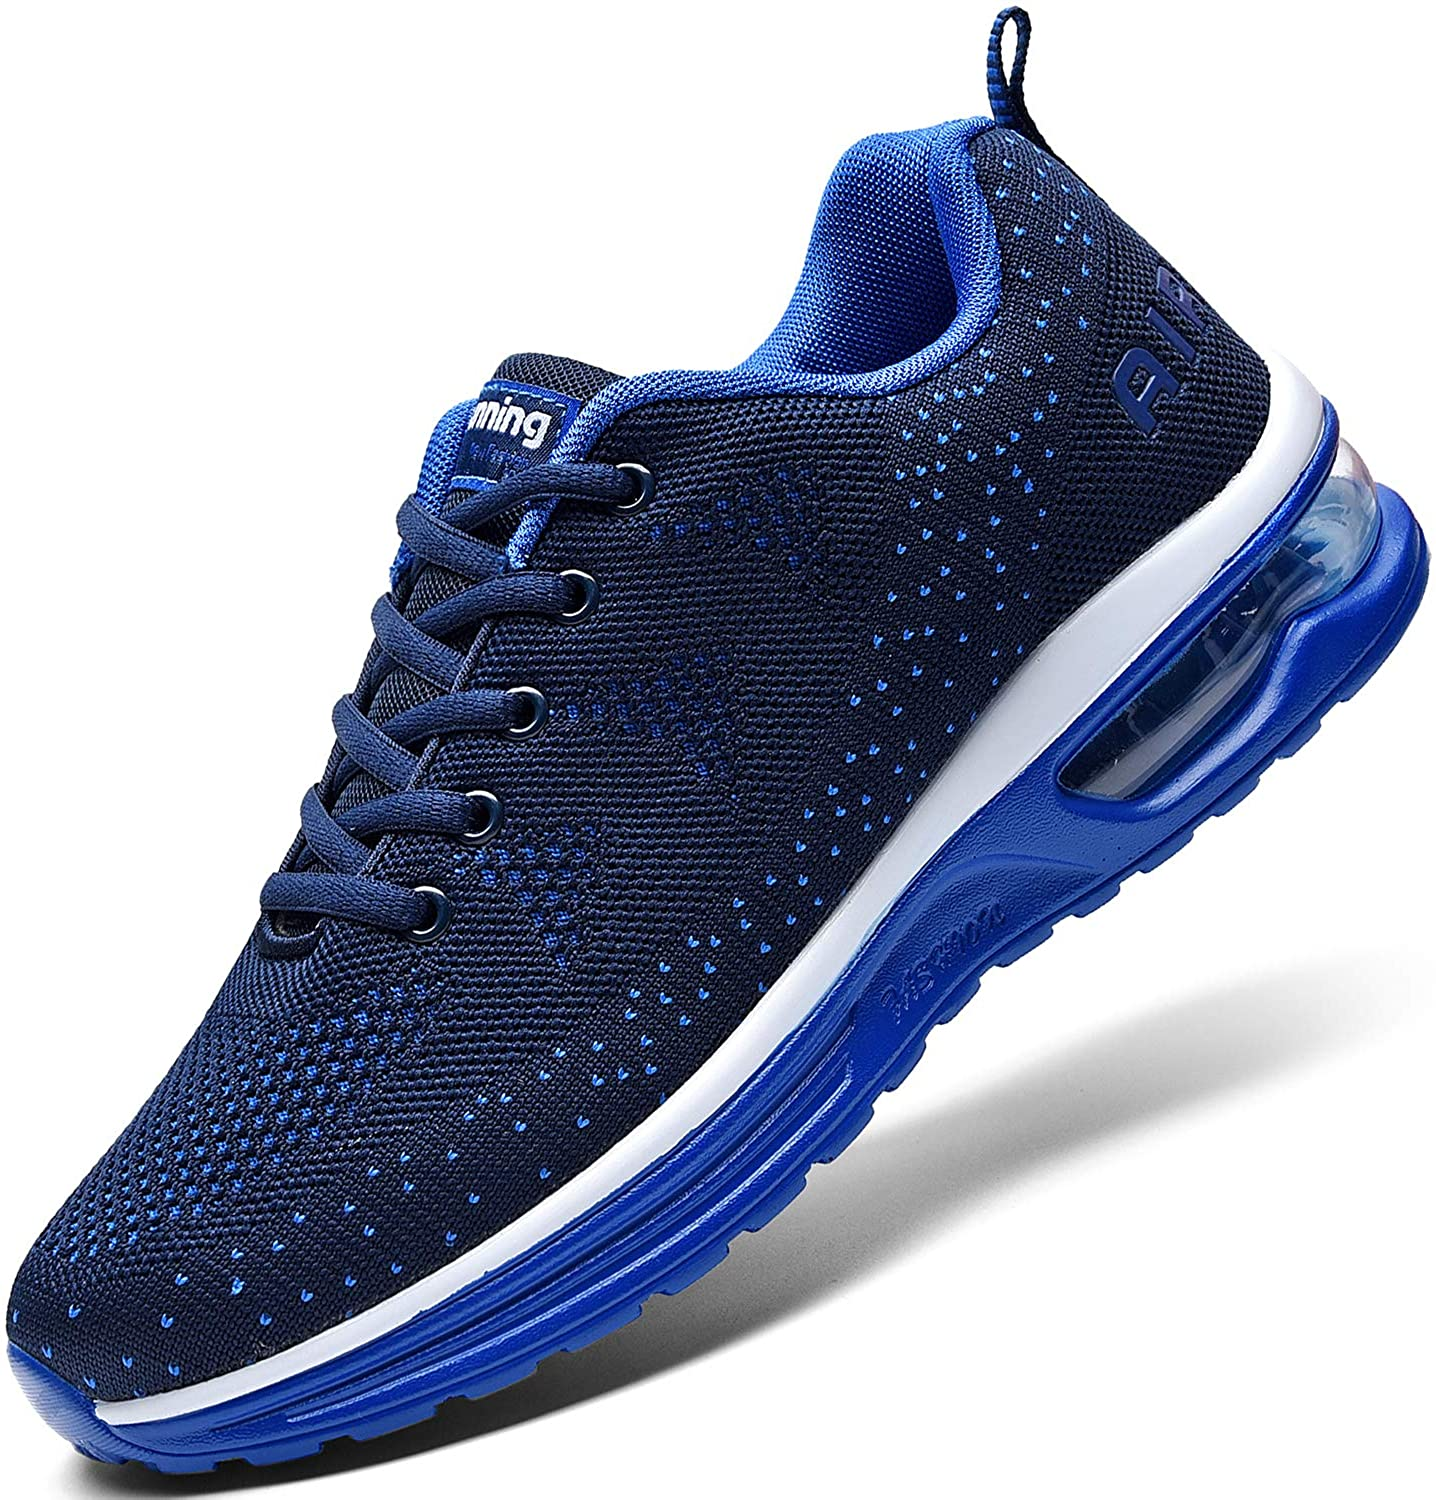 AUPERF Men's Air Running Shoes Workout Fo Lightweight Breathable Manufacturer Max 65% OFF OFFicial shop